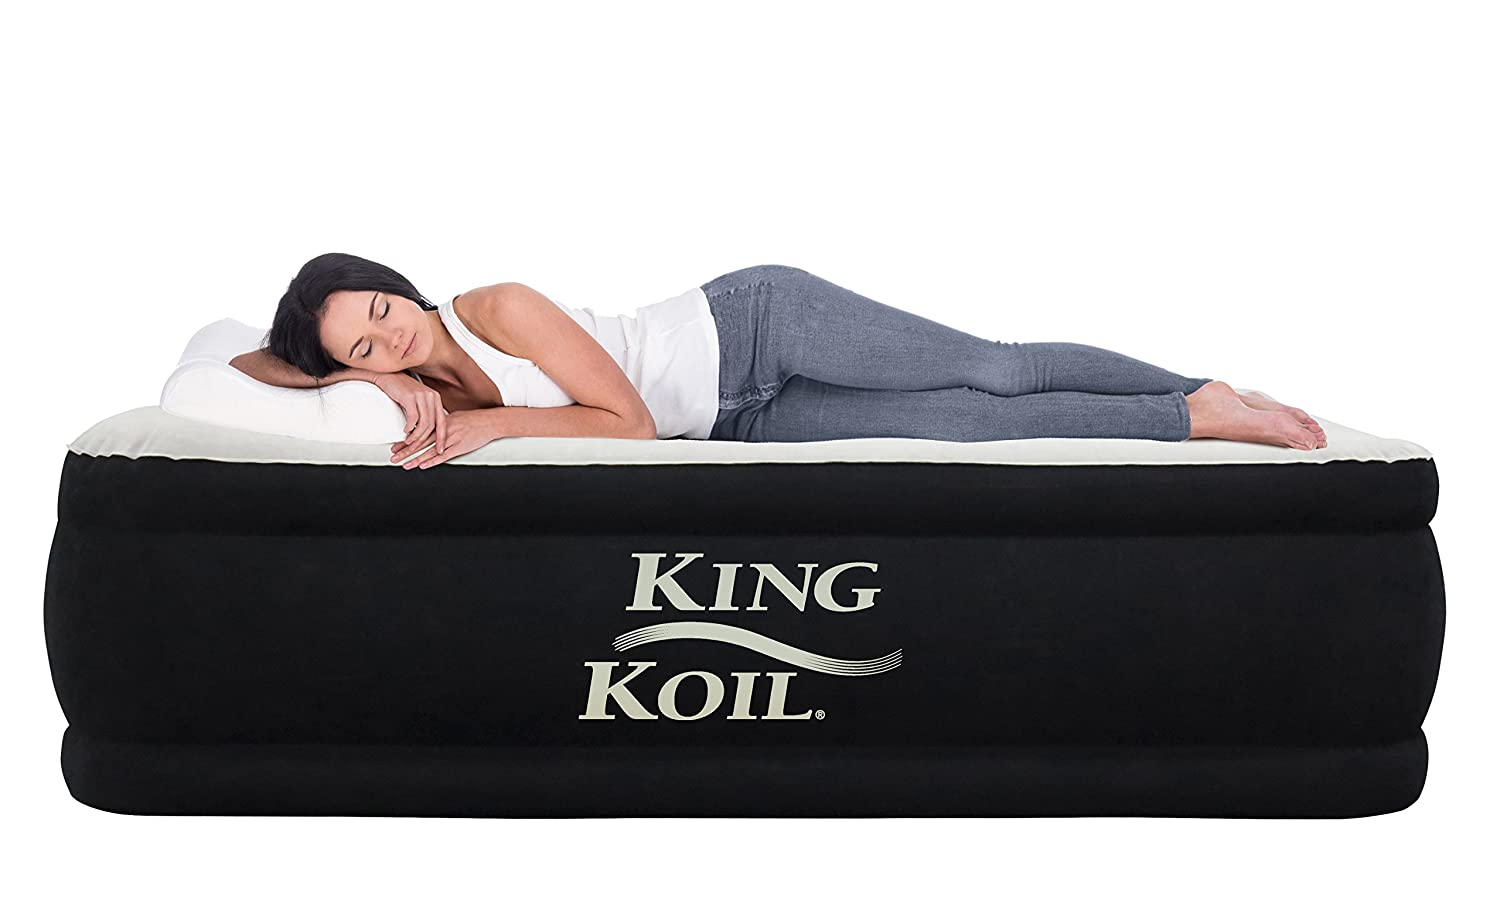 King Koil Twin Size Upgraded Luxury Raised Air Mattress Best Inflatable Airbed with Built-in Pump - Elevated Raised Air Mattress Quilt Top & ONLY Bed with 1-Year Guarantee 29171